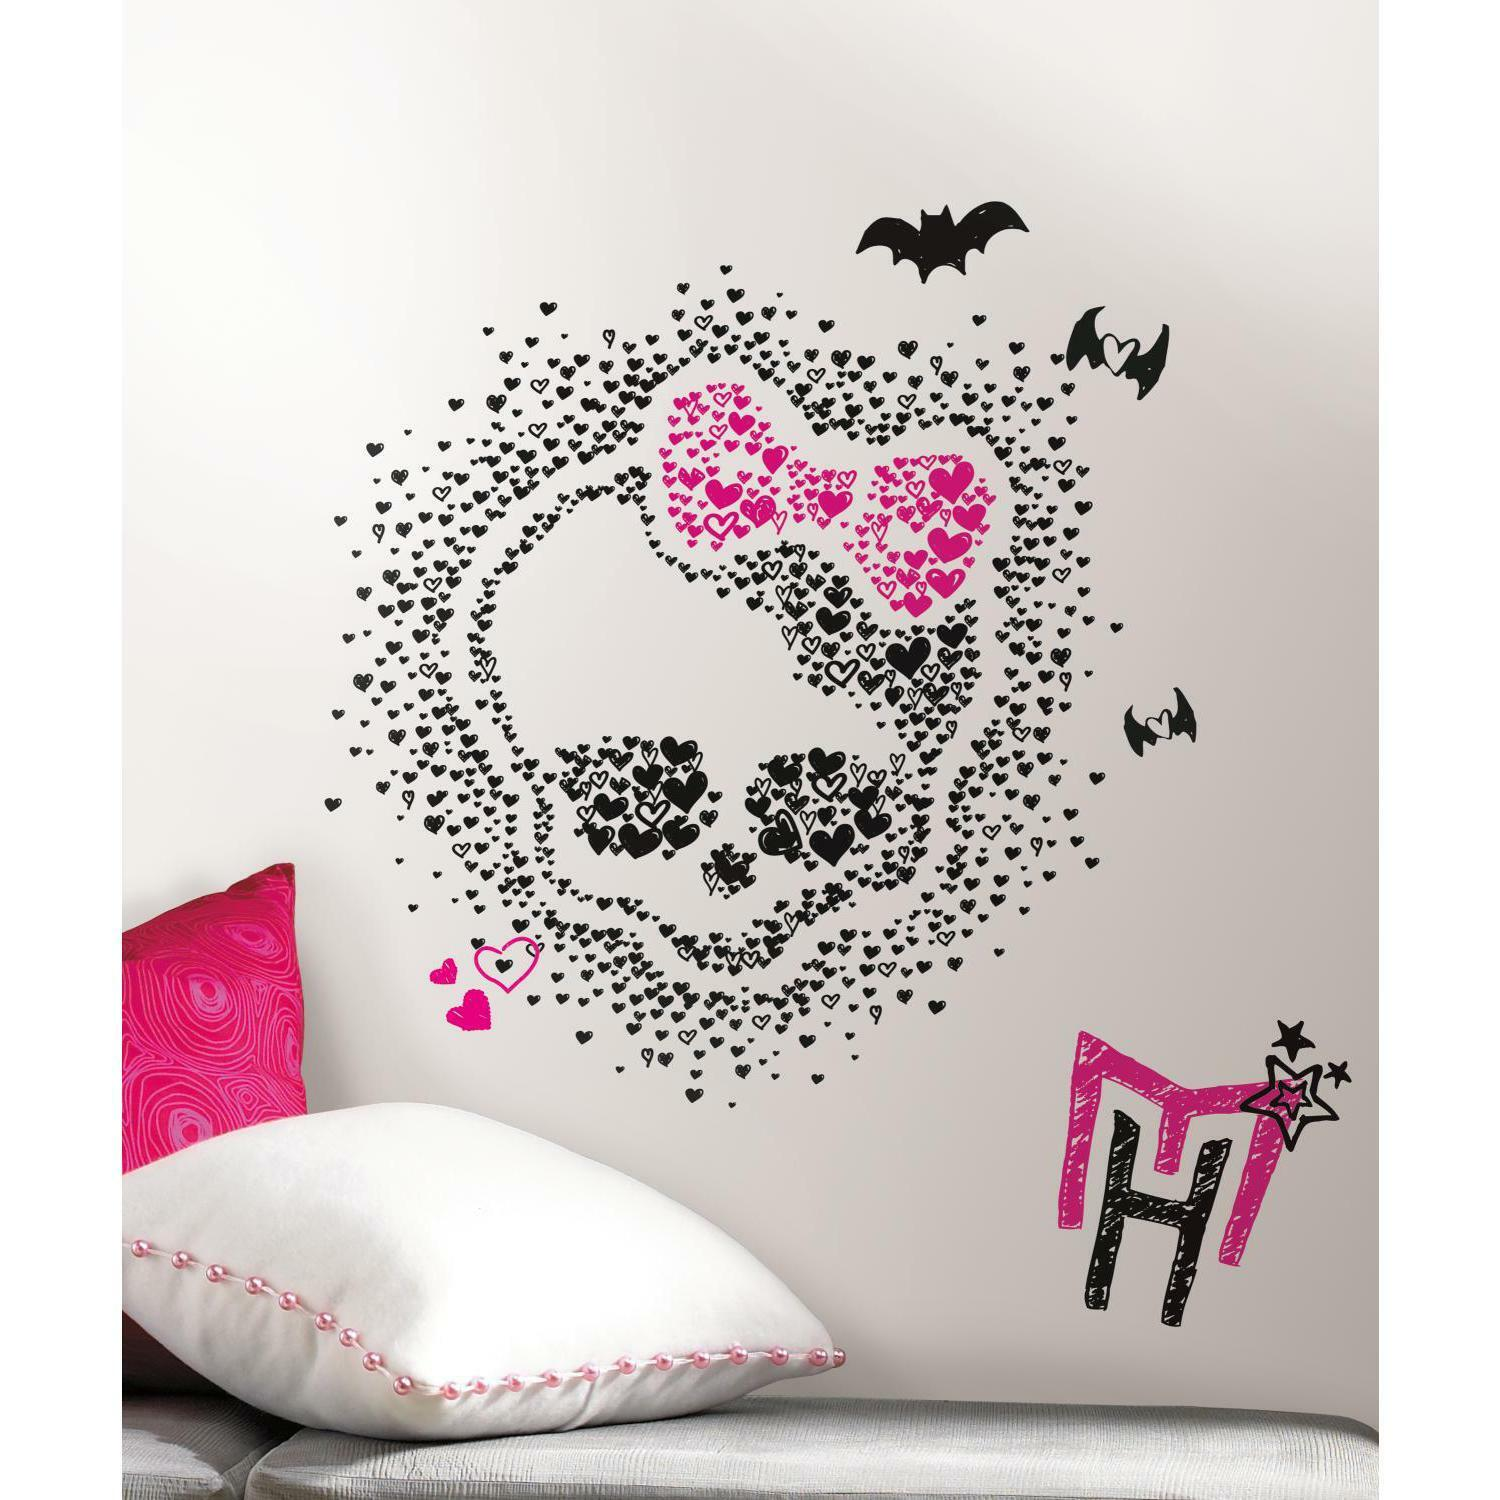 Monster high heart skullette wall stickers mural 18 decals decor picture 1 of 2 amipublicfo Gallery